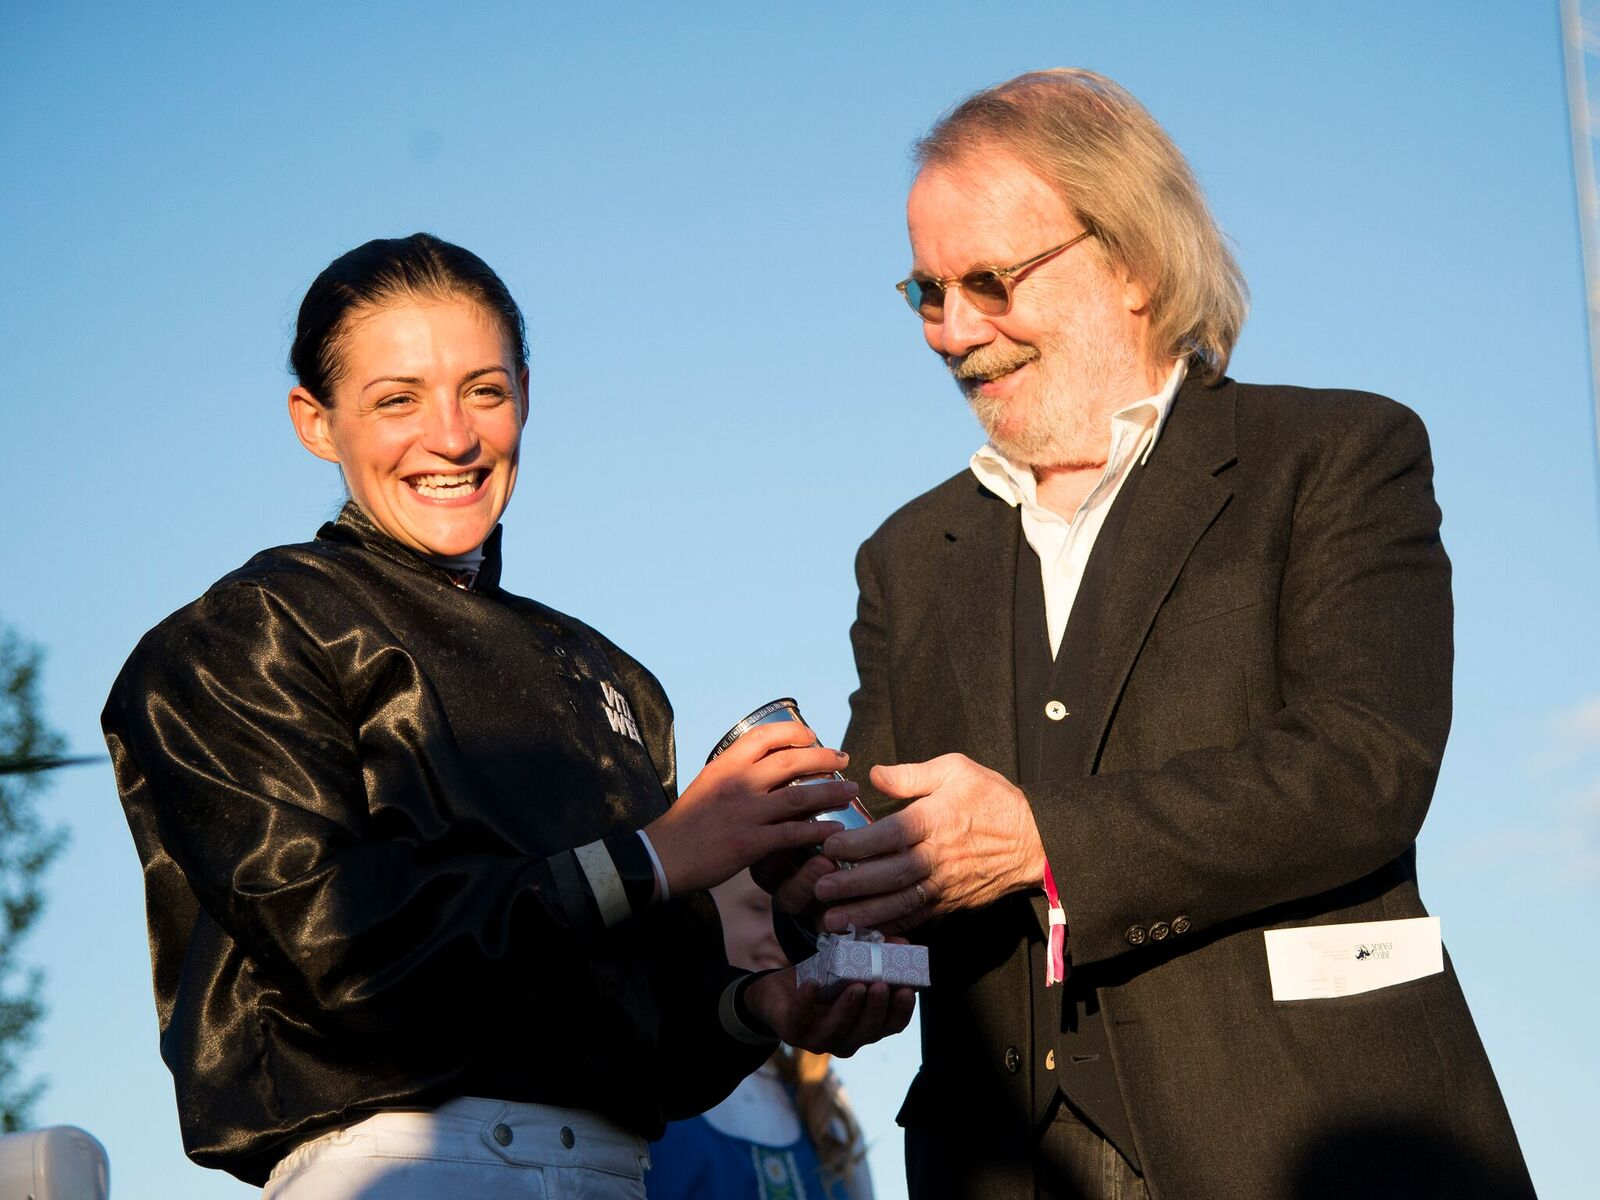 Winning rider Maryline Eon and competition sponsor Benny Andersson